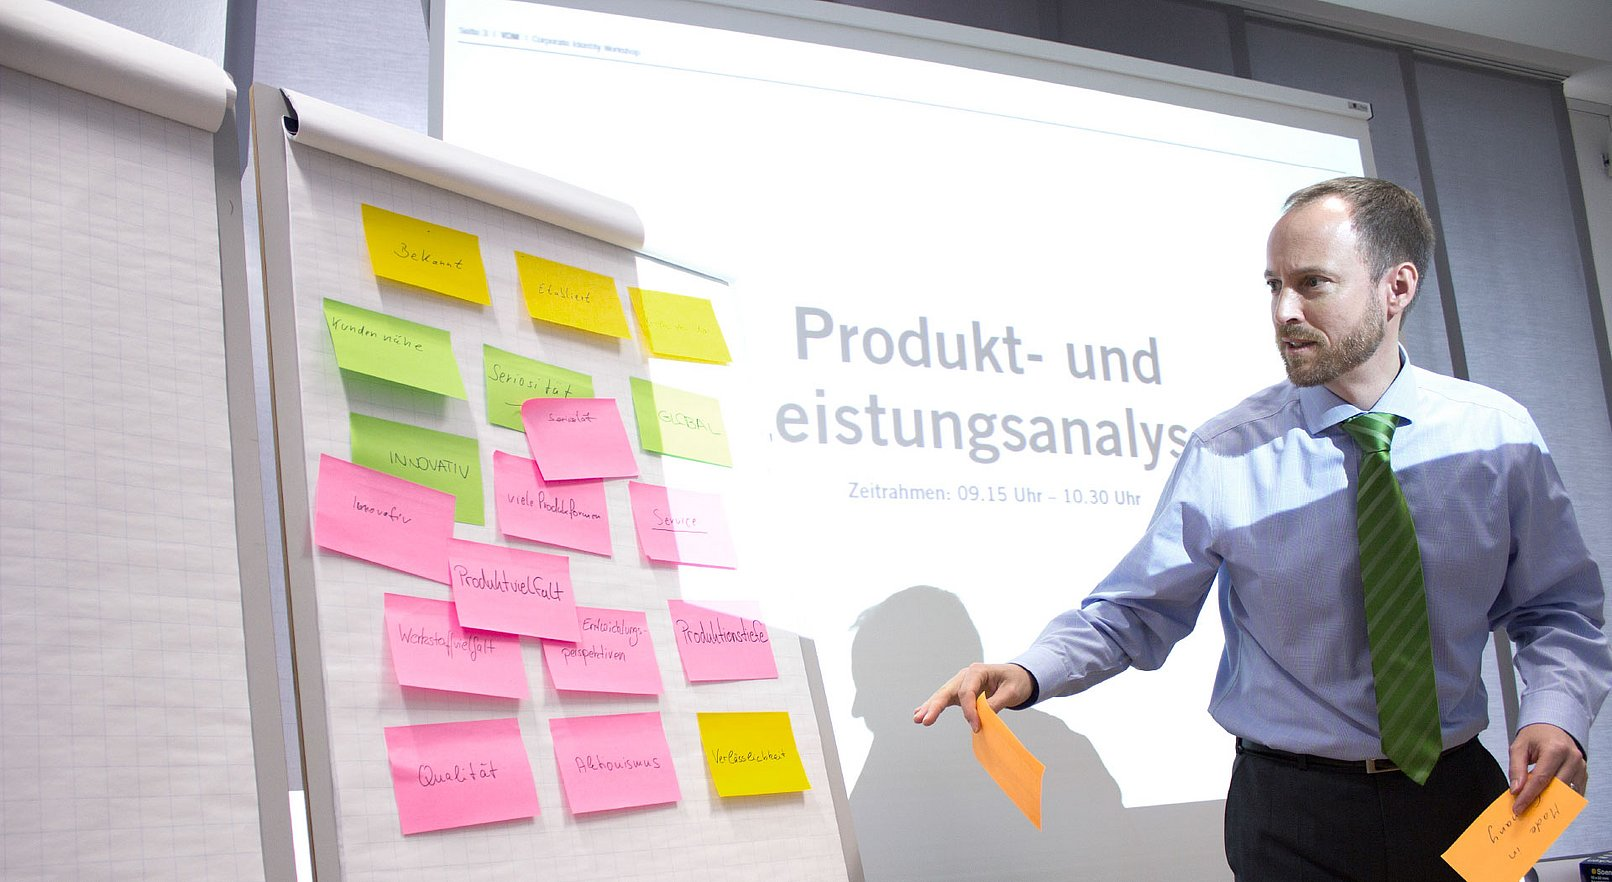 Der Marketingleiter von VDM Metals heftet Post-Its an ein Whiteboard